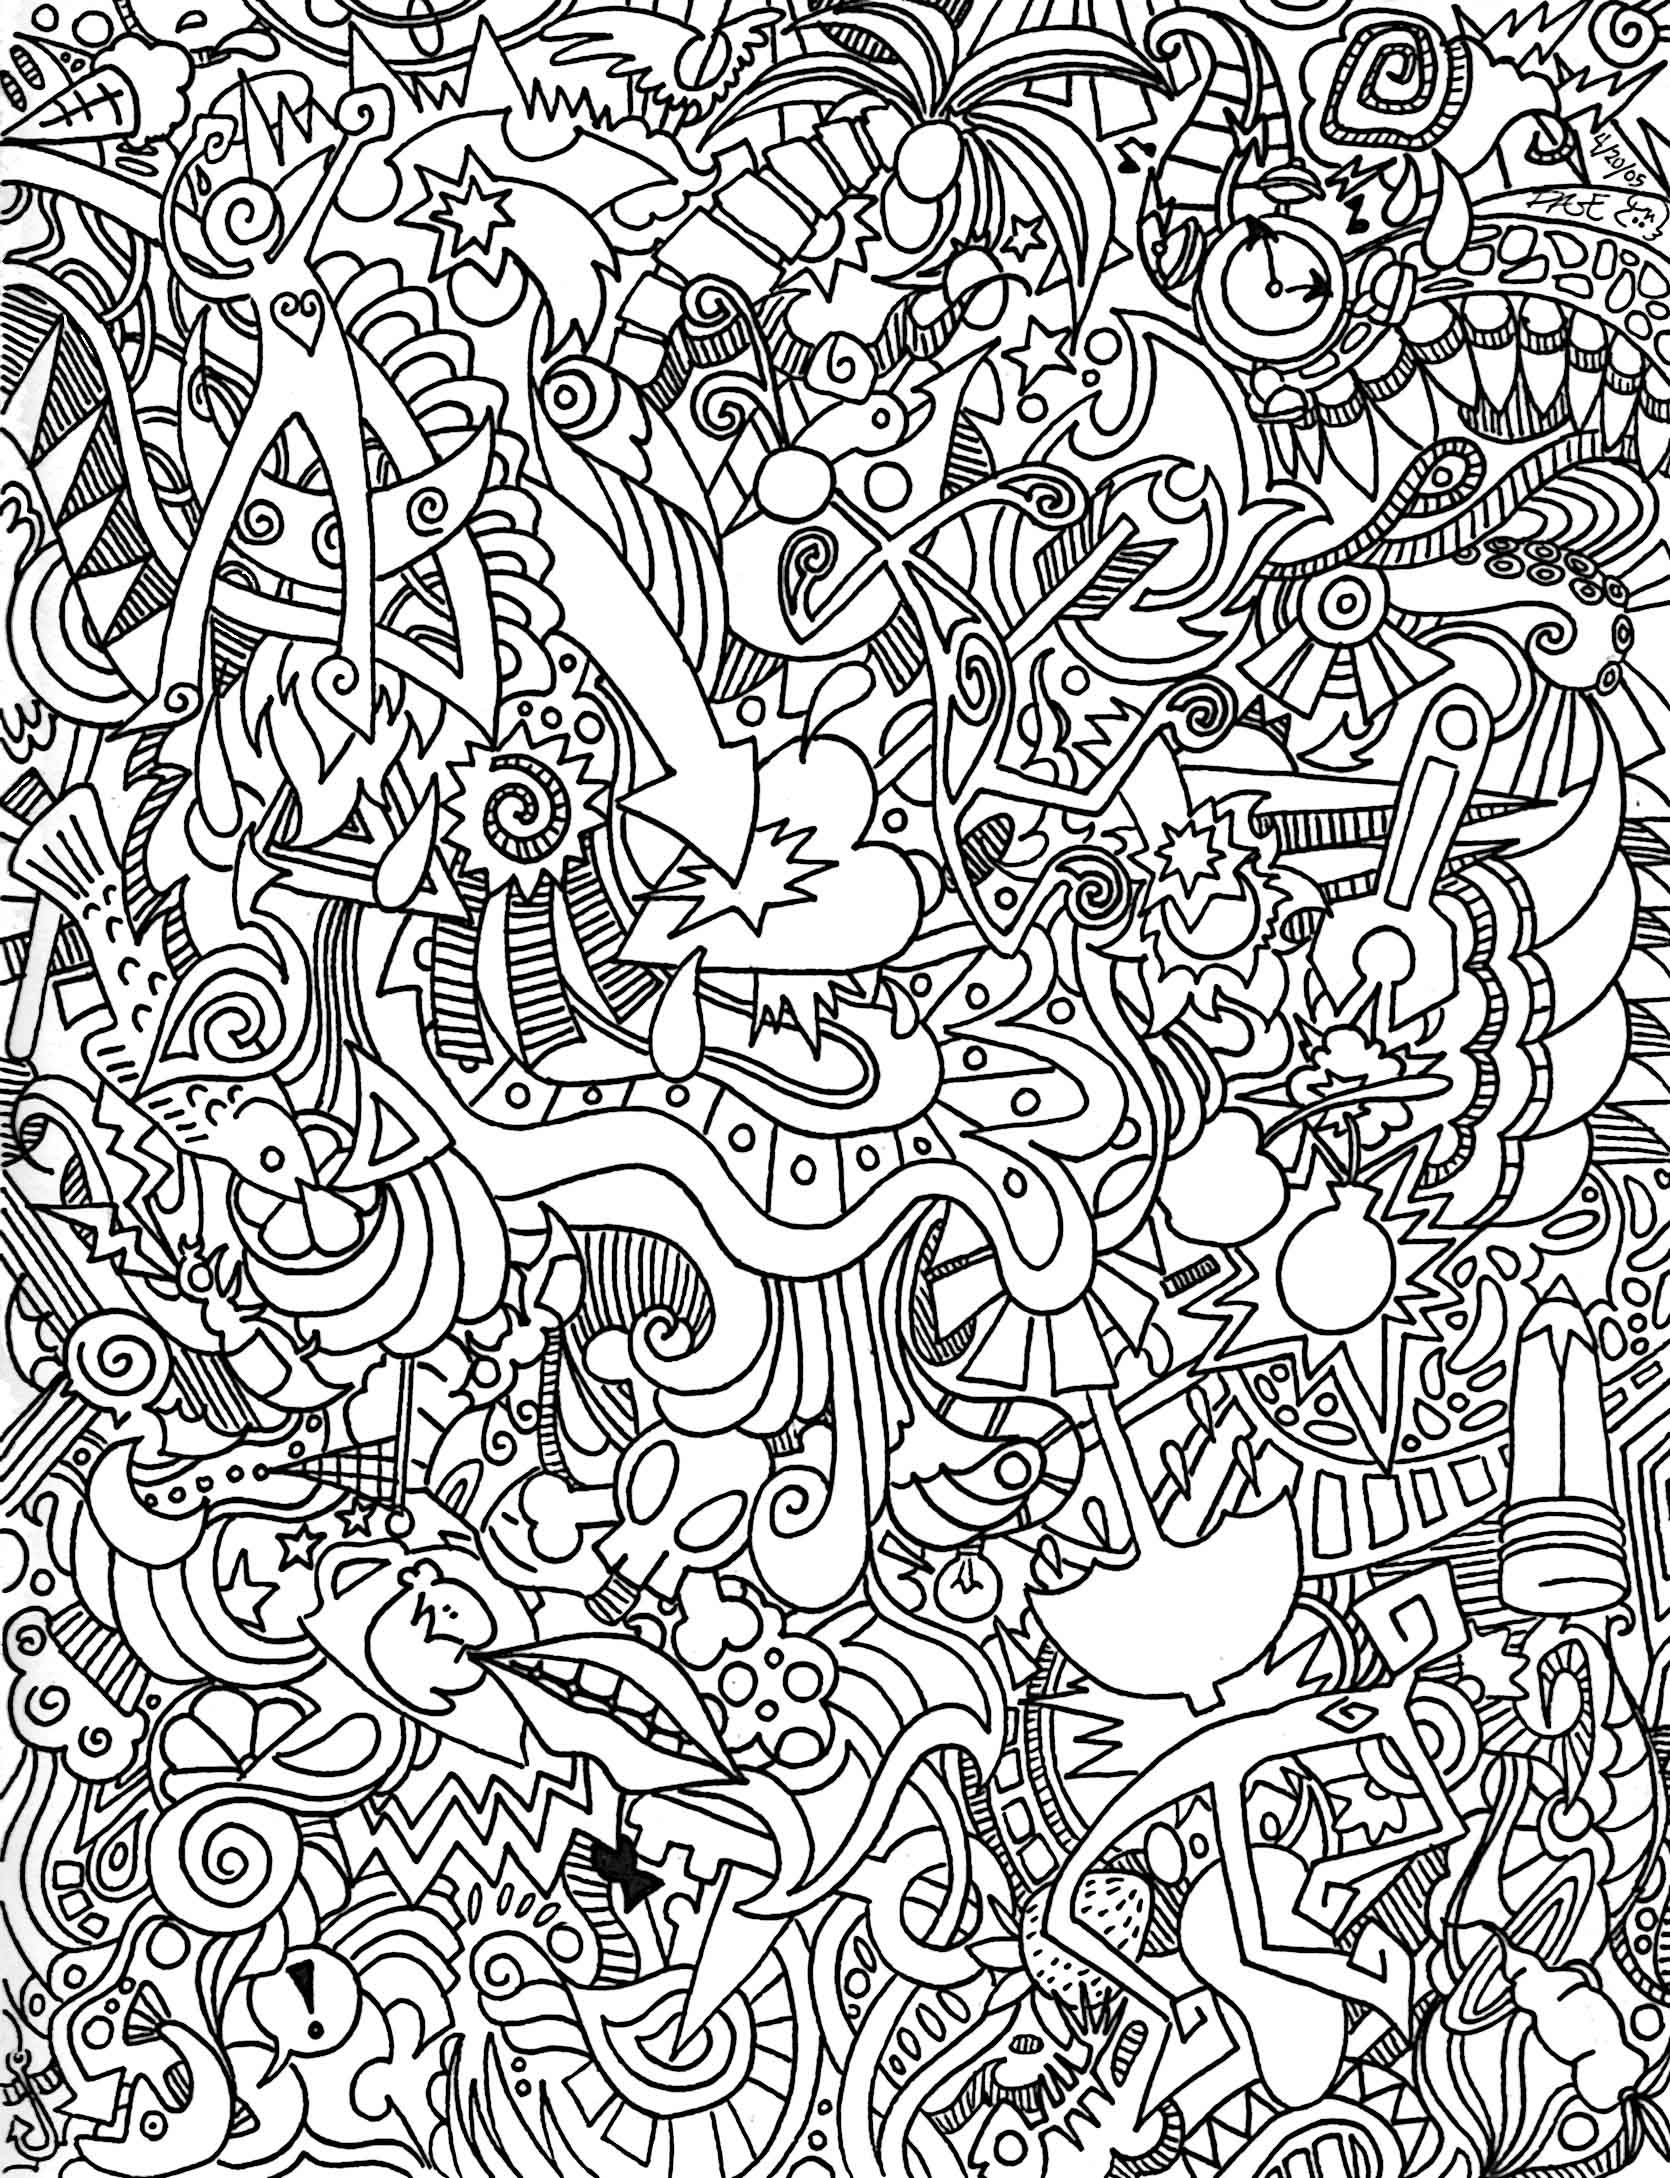 psychedelic coloring pages psychedelic pattern coloring page free printable coloring psychedelic pages